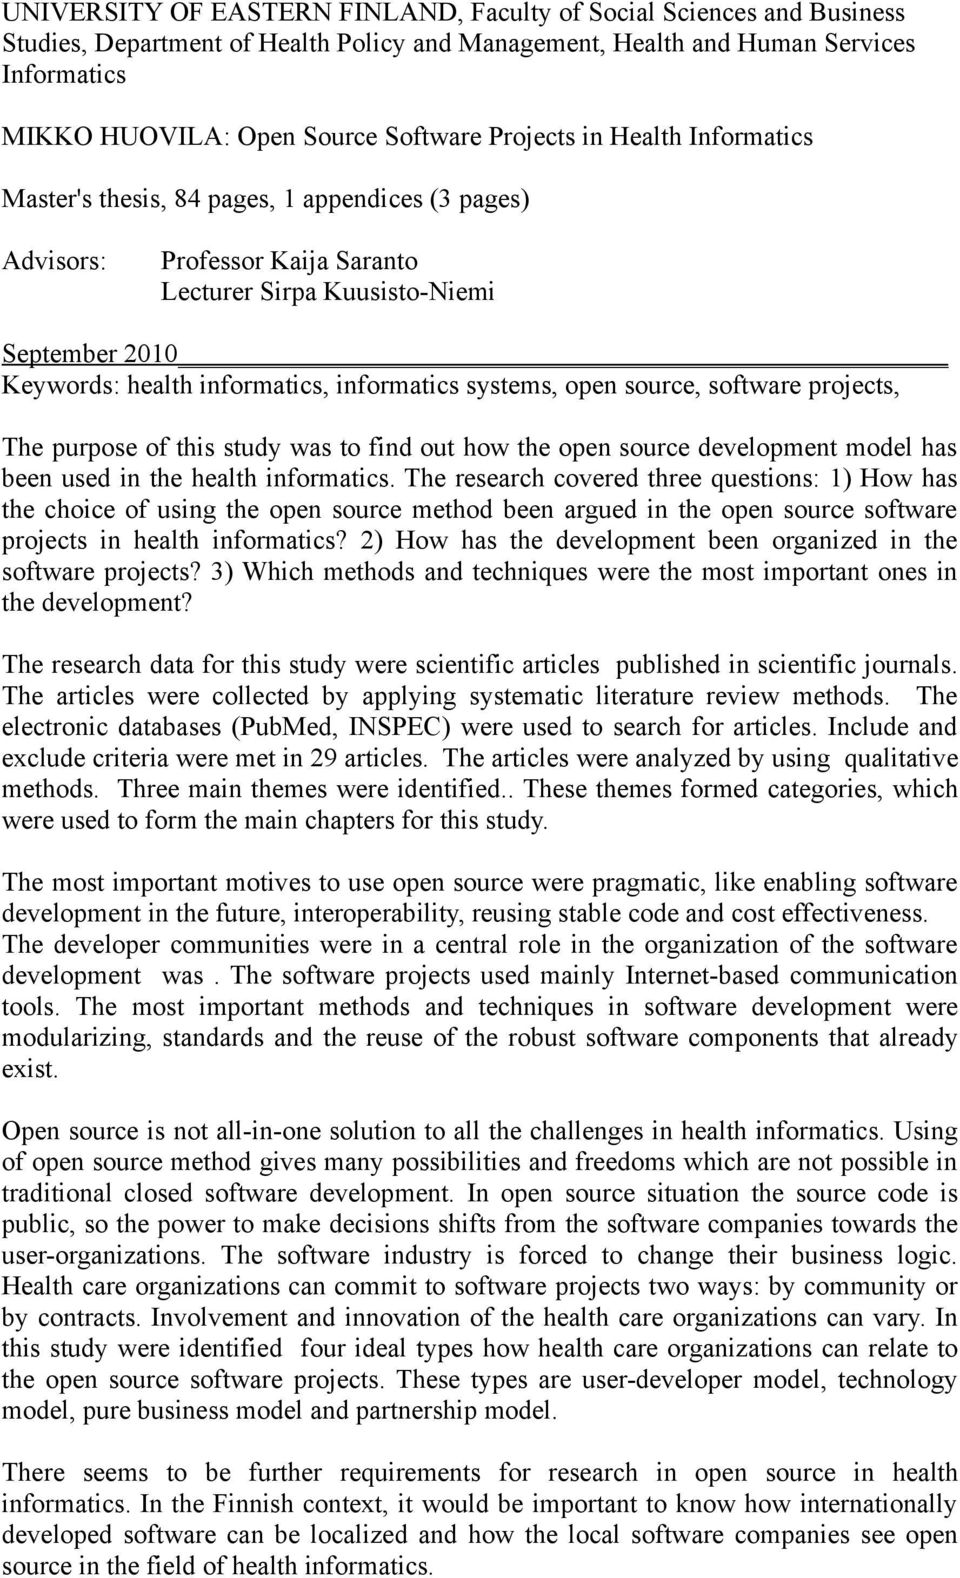 informatics systems, open source, software projects, The purpose of this study was to find out how the open source development model has been used in the health informatics.